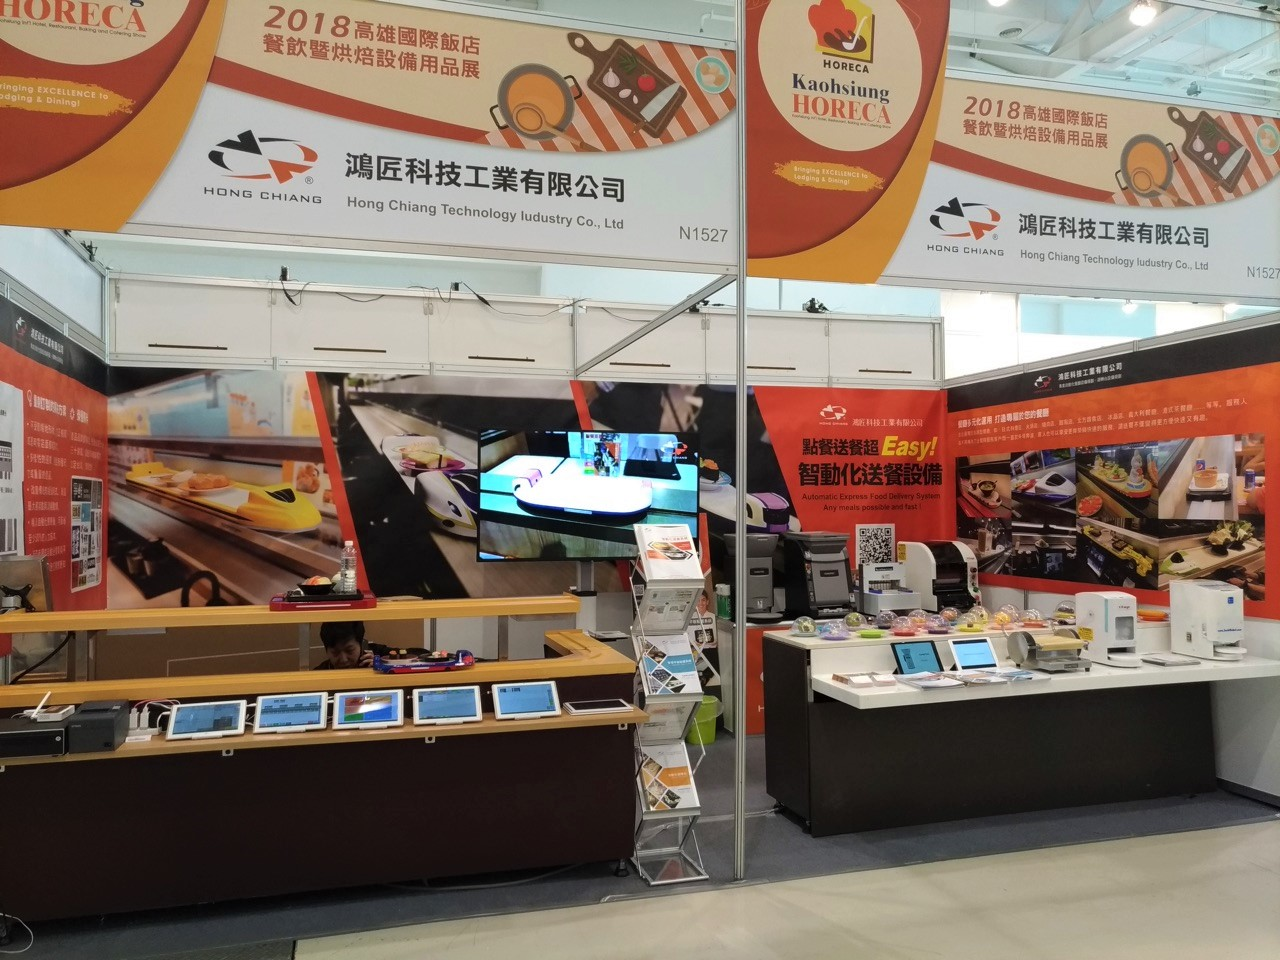 Kaohsiung Int'l Hotel, Restaurant, Baking at Catering Show